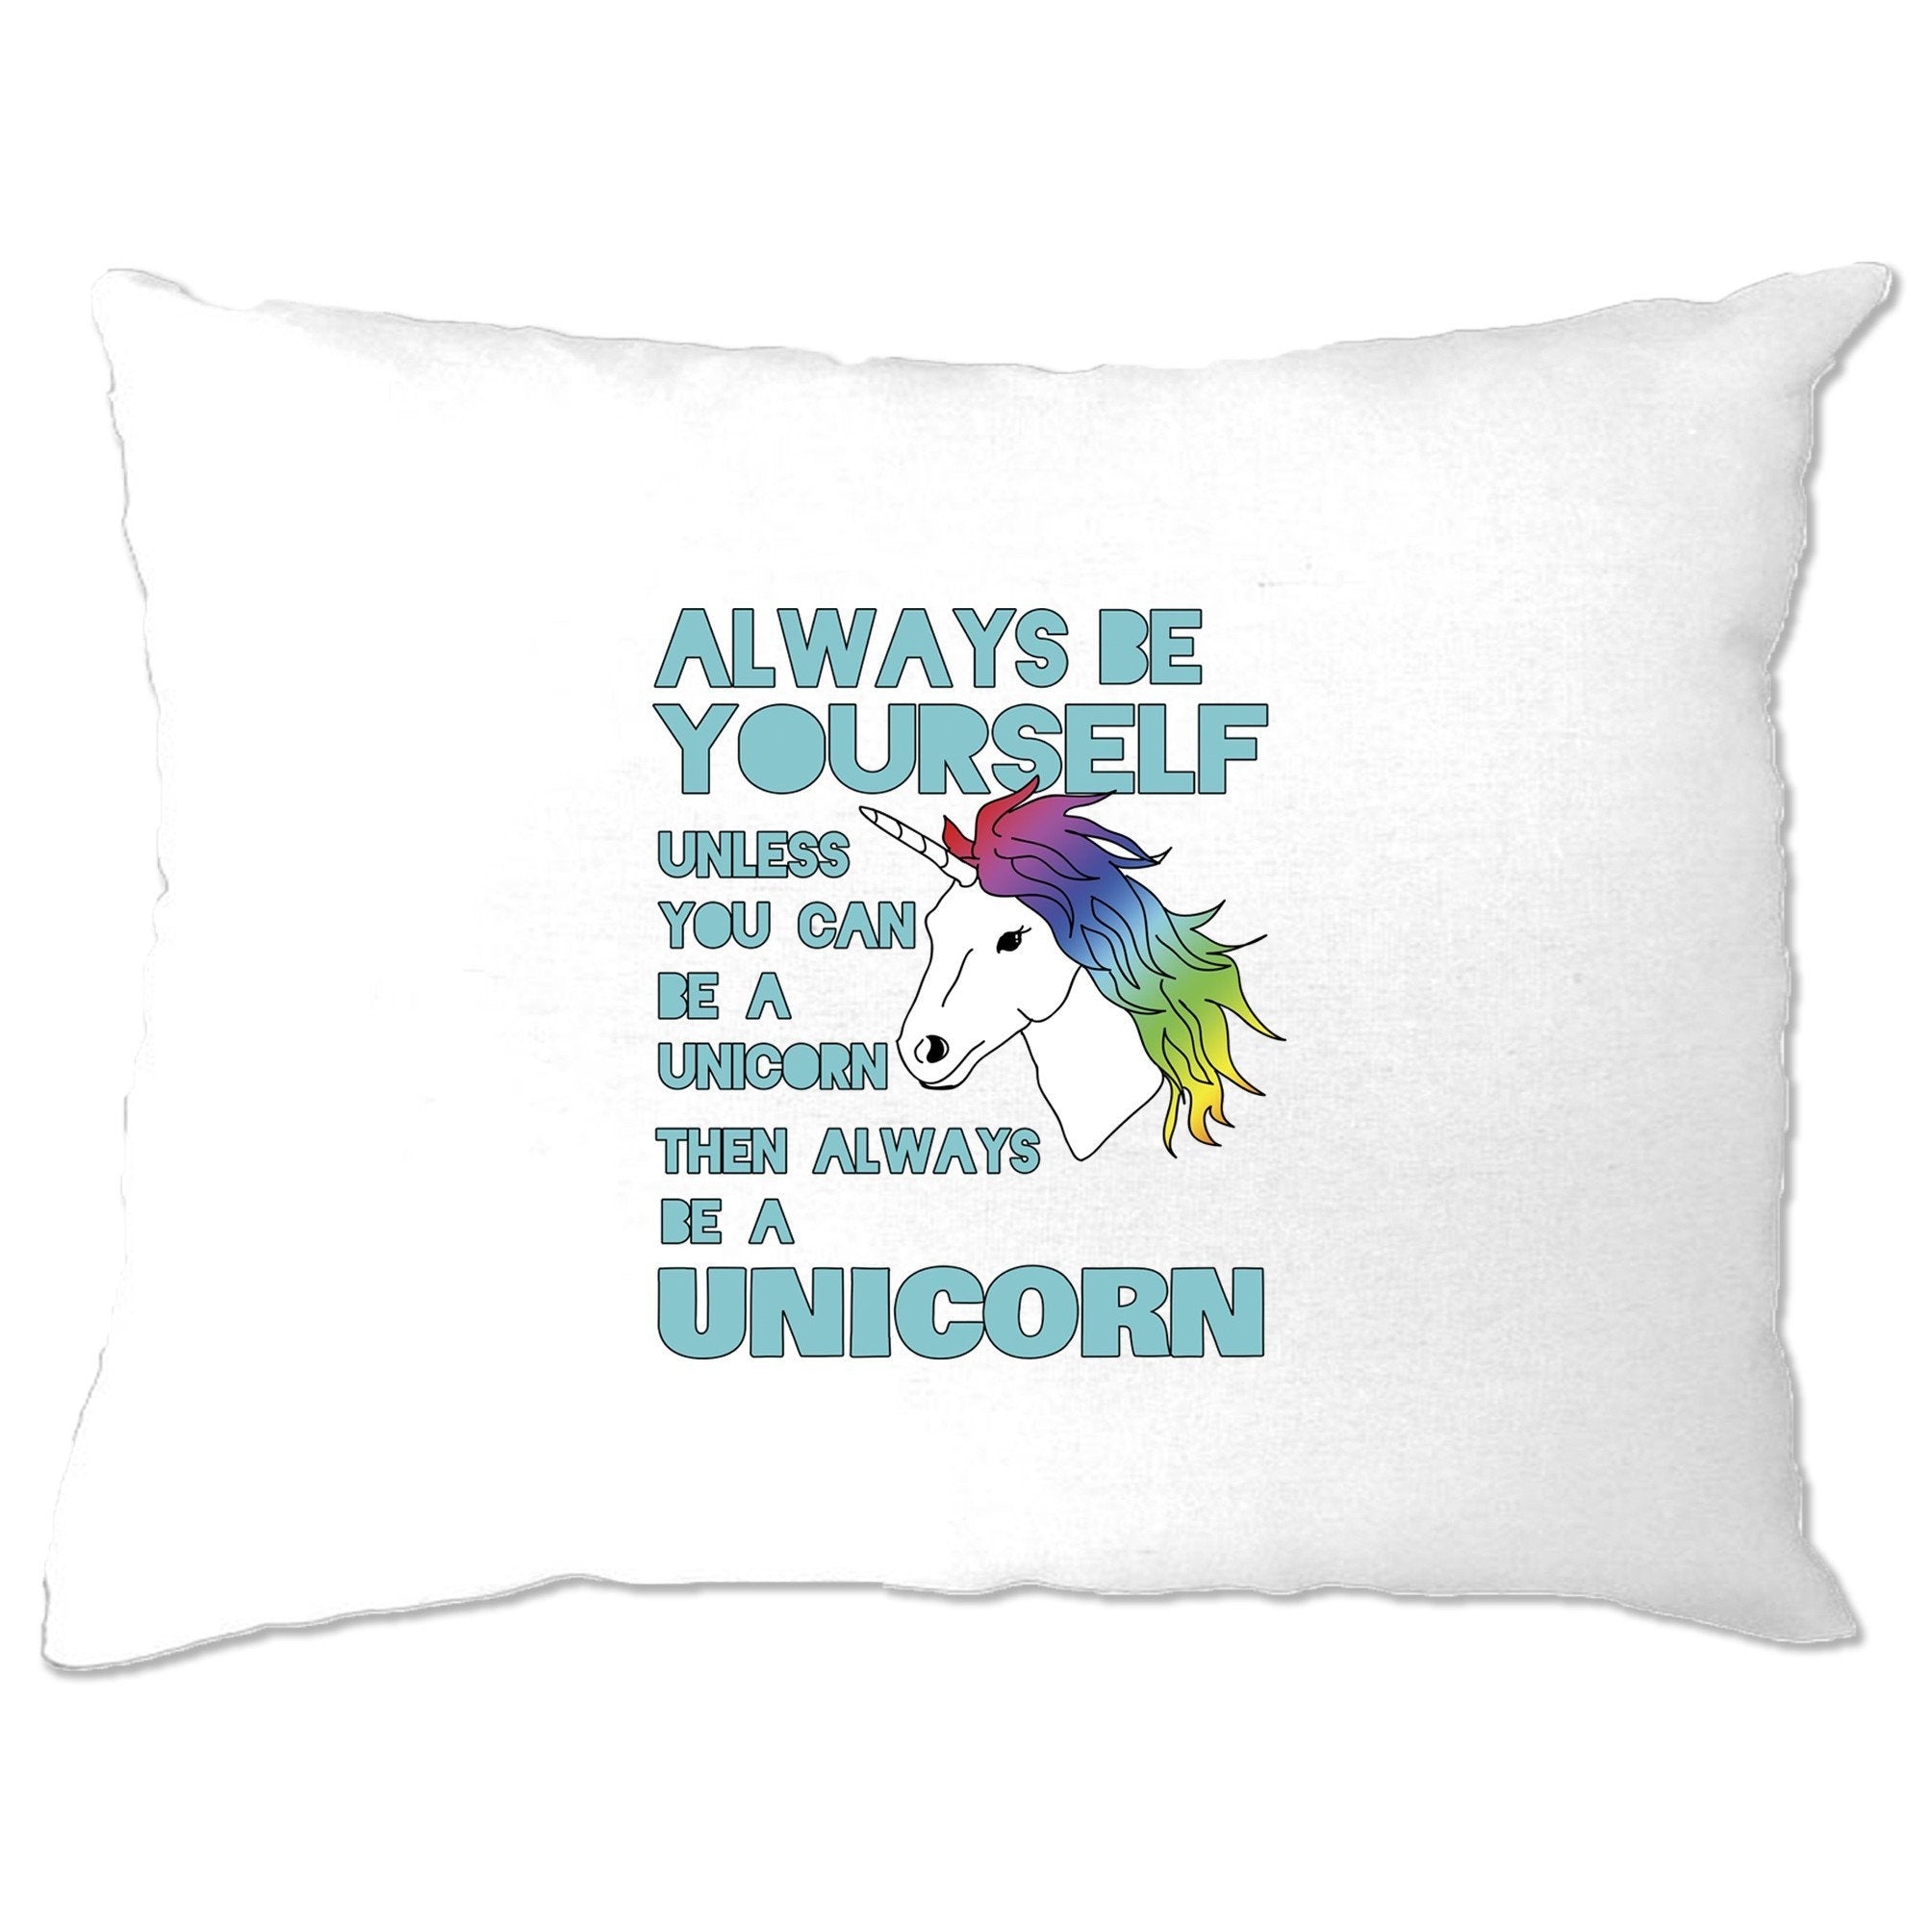 Novelty Unicorn Pillow Case Always Be Yourself